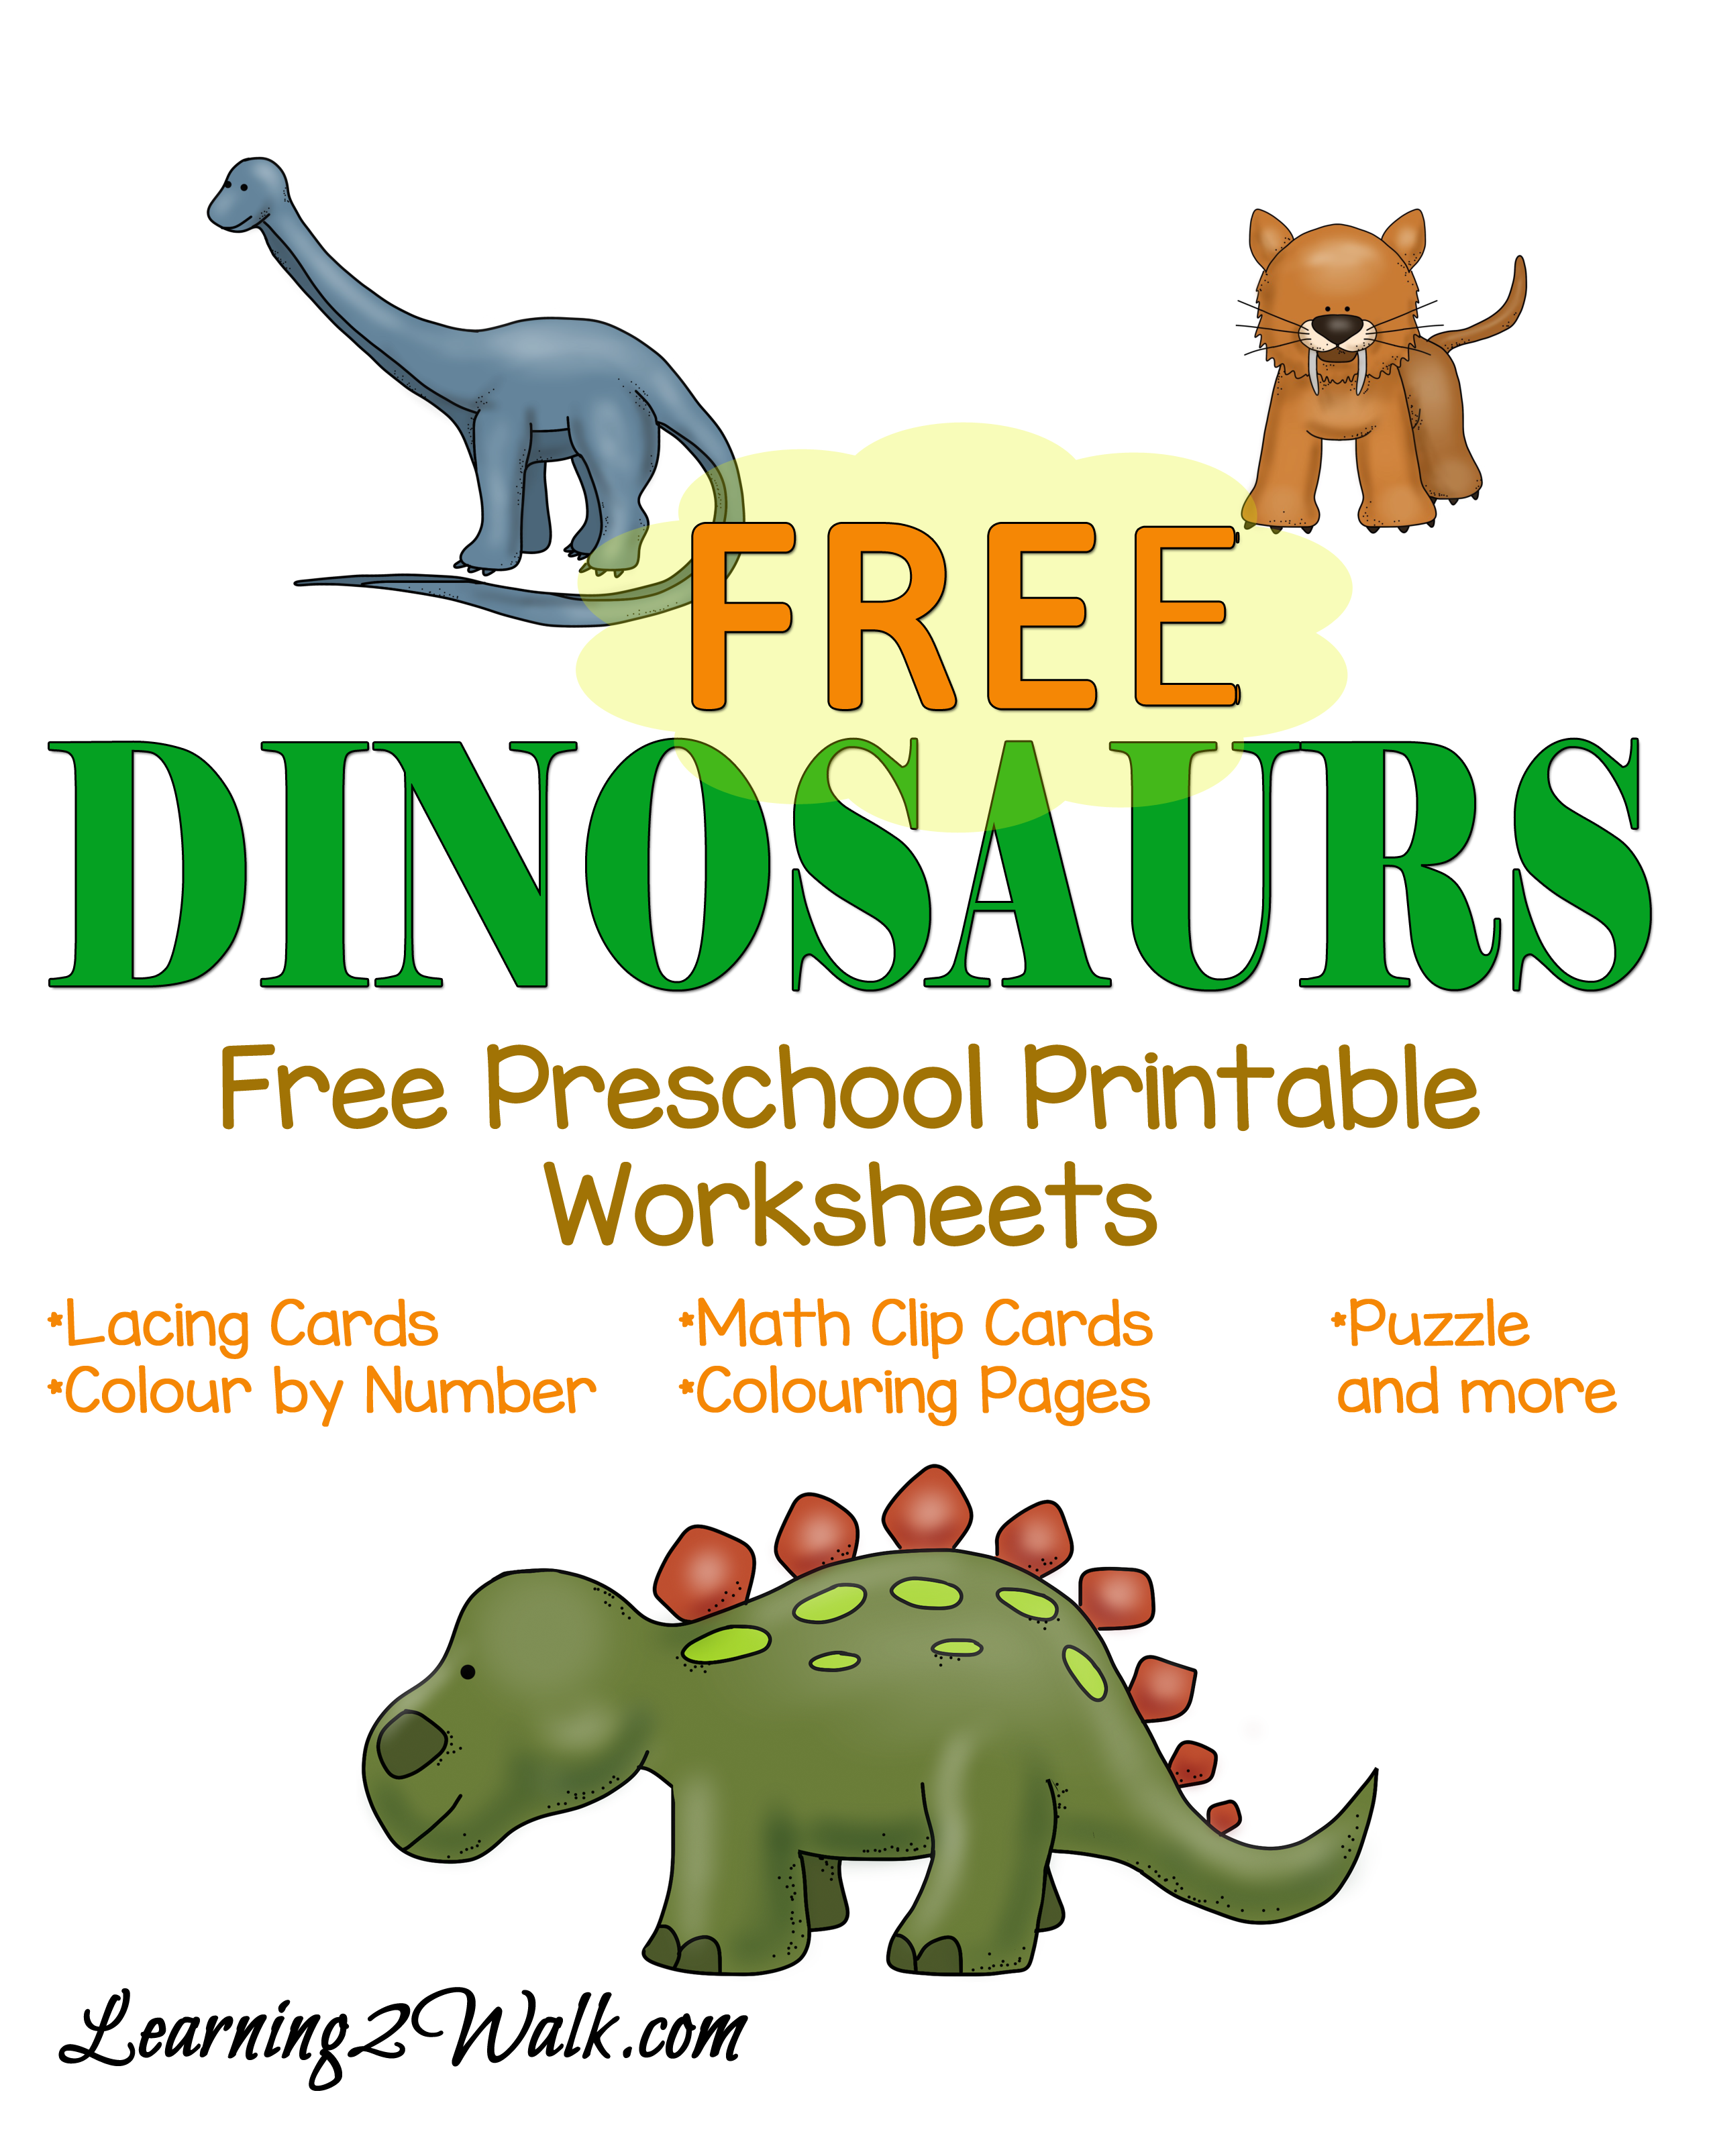 Printable Dinosaur Worksheets : Dinosaurs free preschool printable worksheets